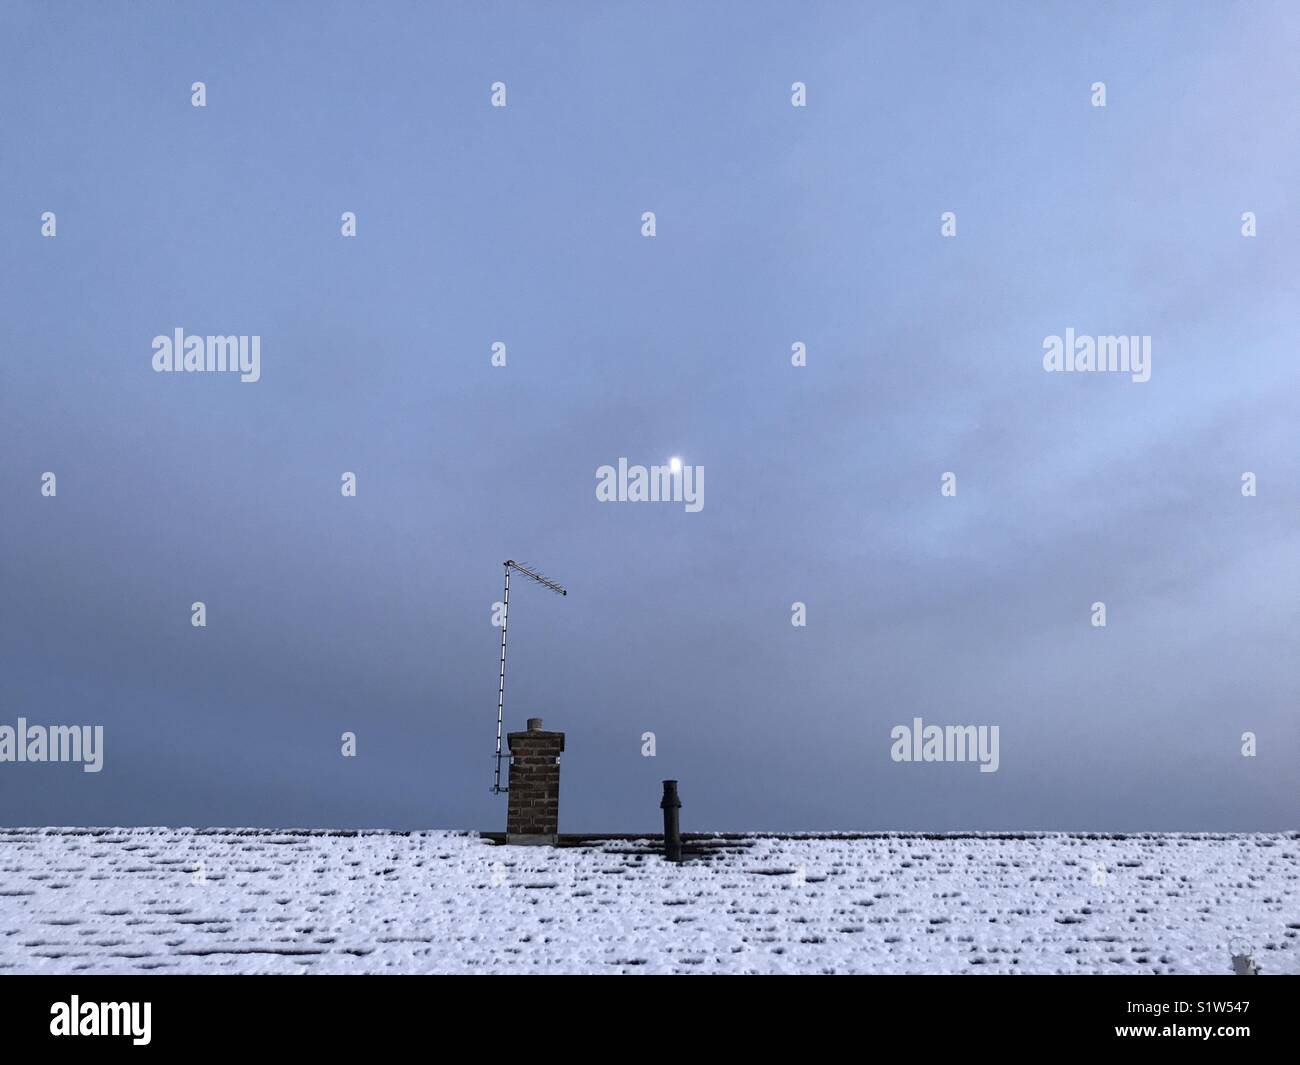 Snowy rooftop at dusk - Stock Image